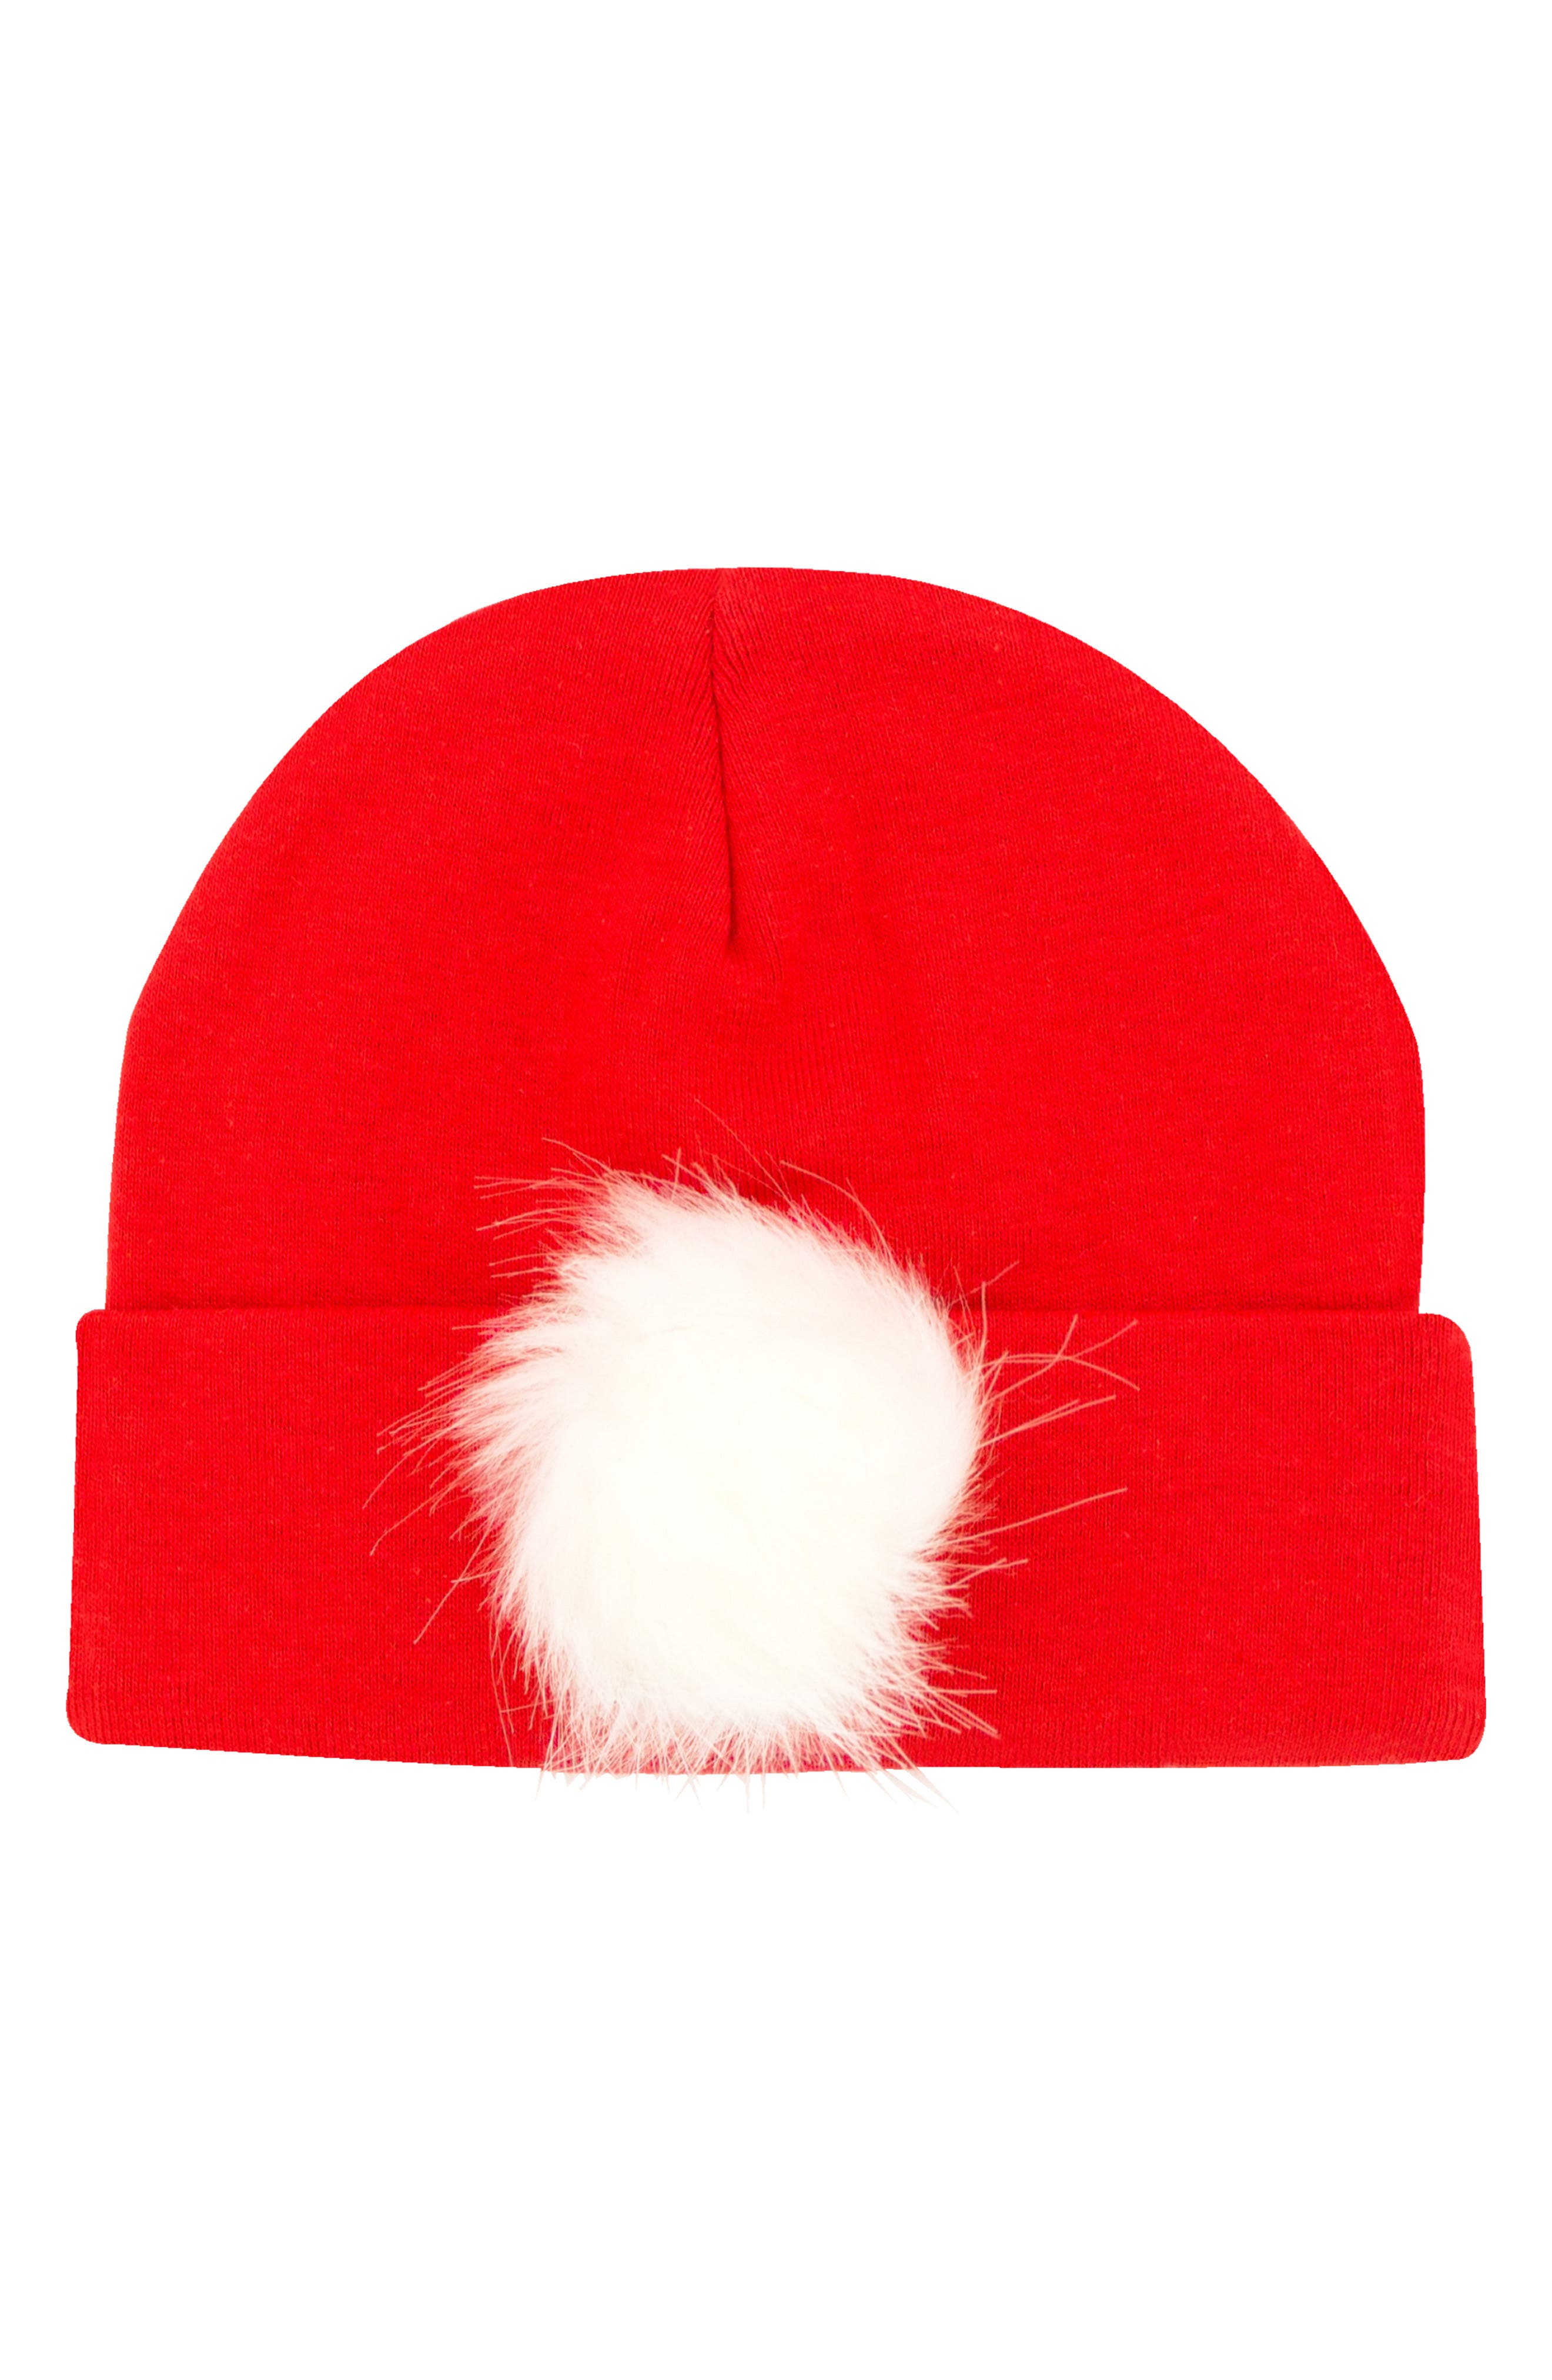 ... promo code for plh bows faux fur pompom knit hat baby girls 1150d 8053e c6dbf4d4a04